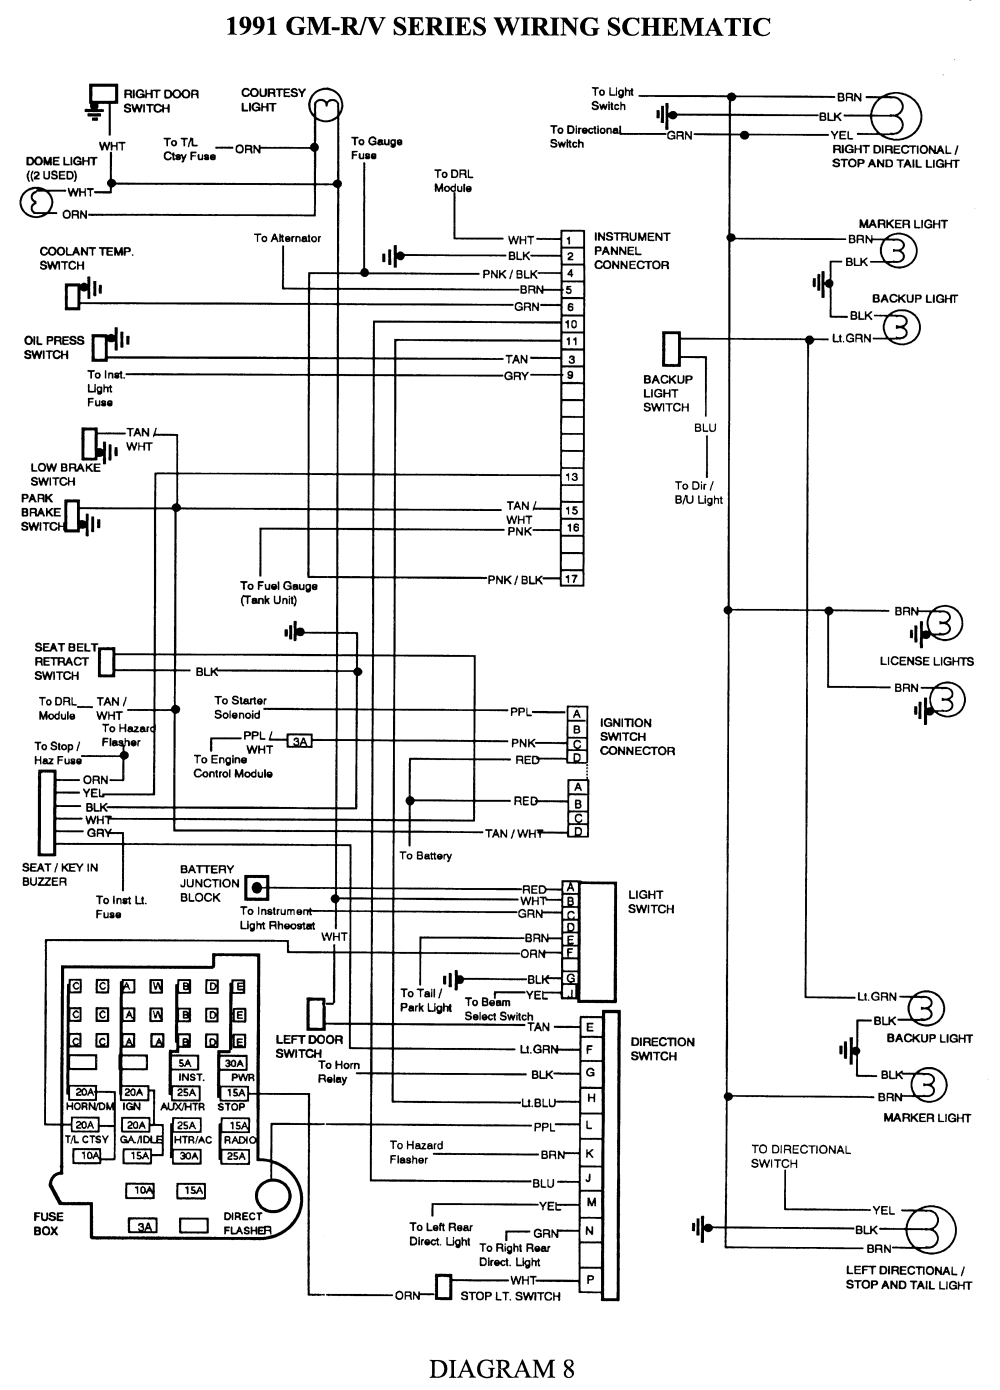 Wiring Diagram For 1999 Chevy Blazer